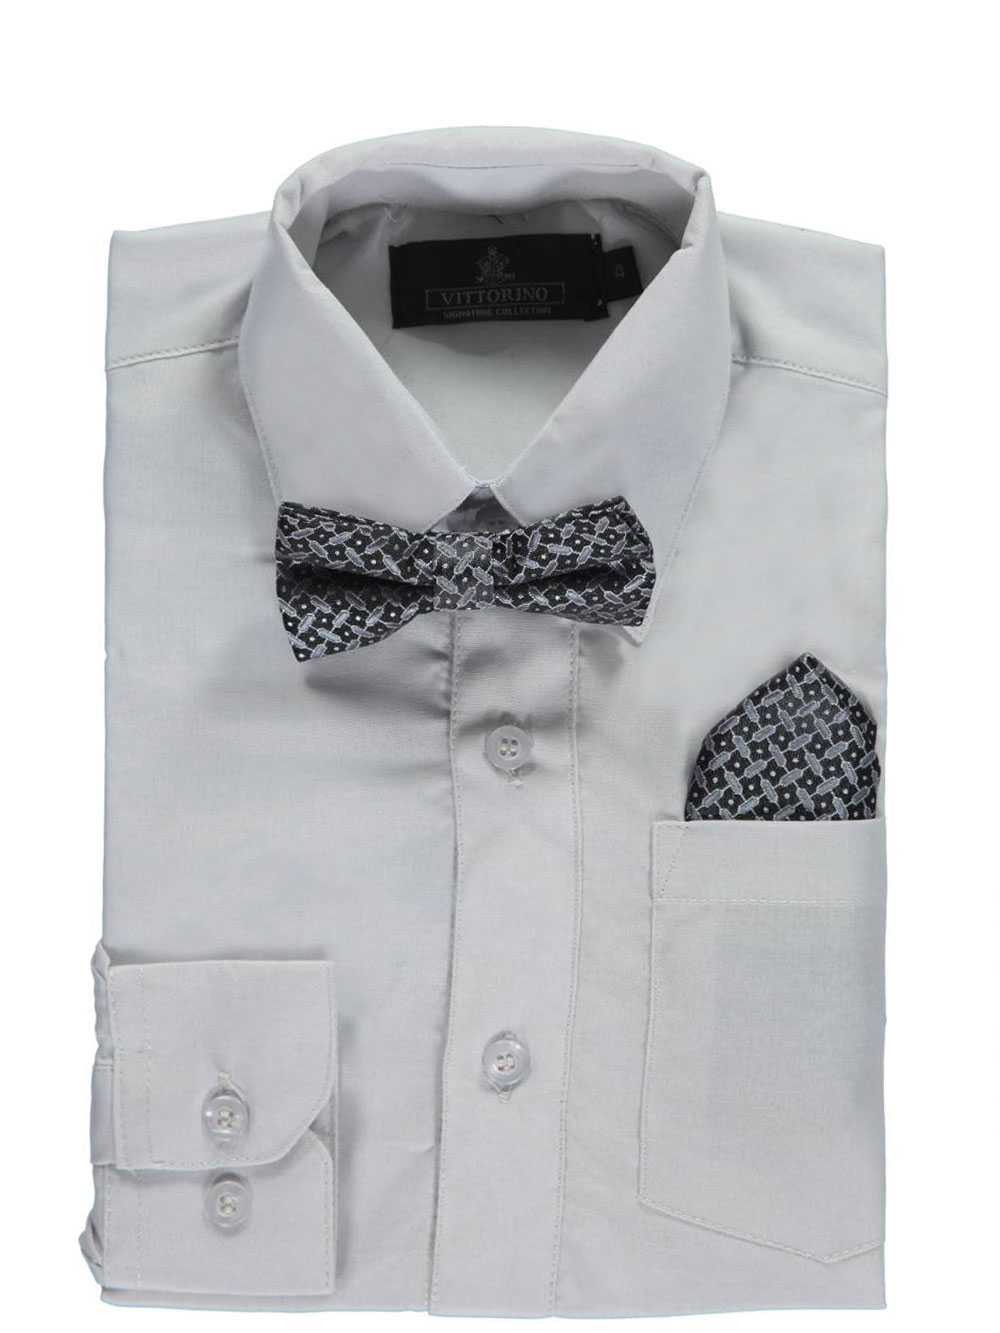 Vittorino Little Boys' Dress Shirt with Accessories (Sizes 4 - 7) - light gray, 4